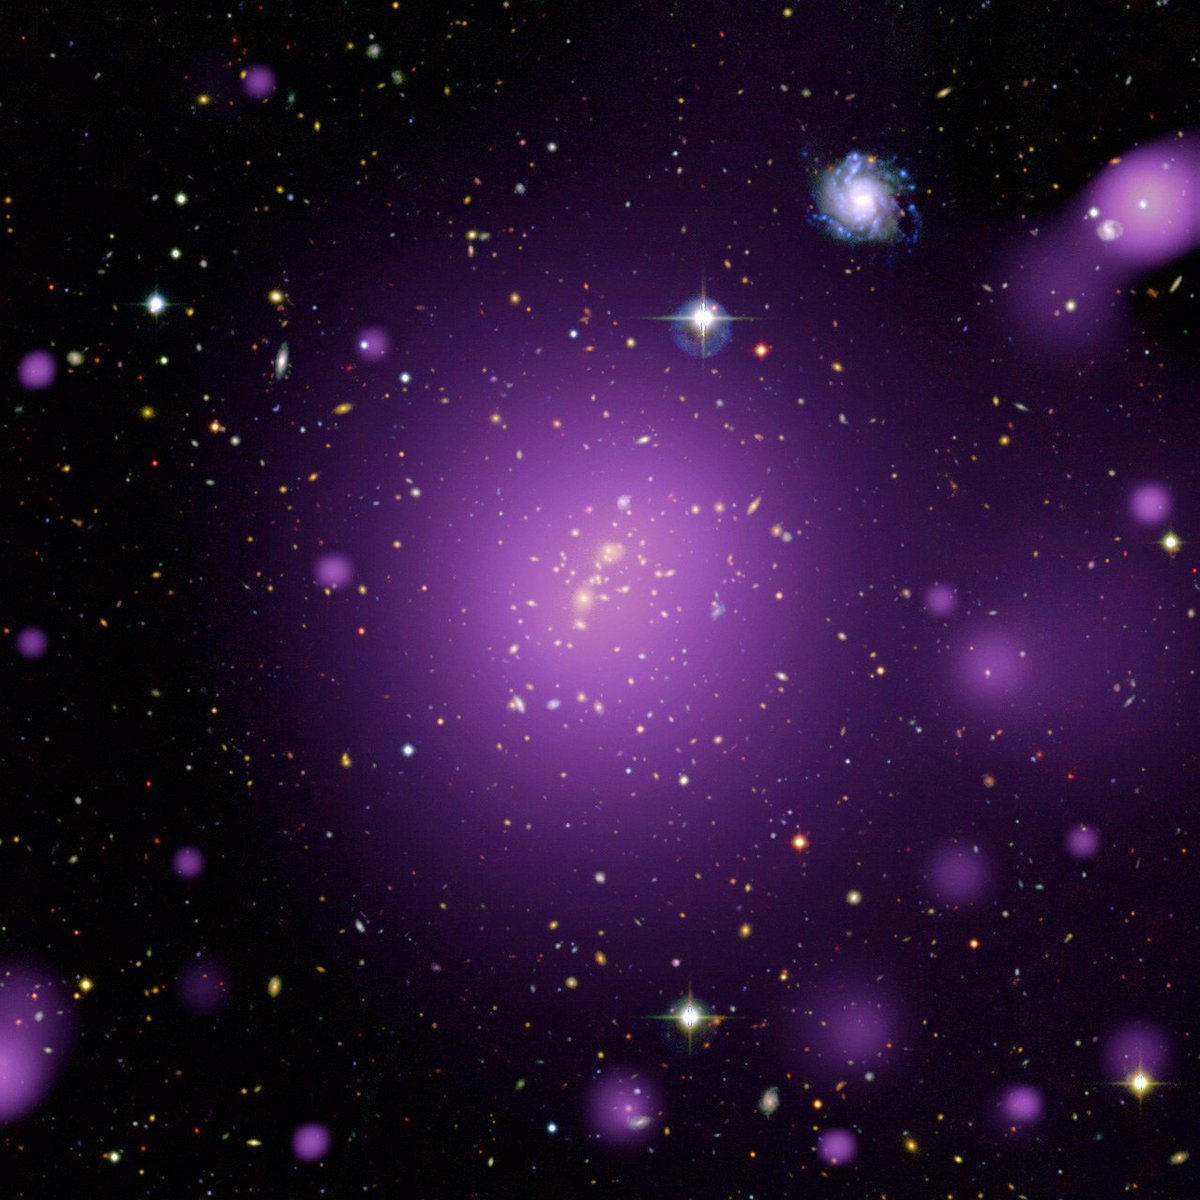 So. Much. Purple. This massive cluster of galaxies emits hot gases that glow purple in x-ray light. Called XLSSC006, the cluster contains hundreds of galaxies and dark matter, so much so that everything in it adds up to around 500 trillion solar masses. https://t.co/GV6oSbY74I